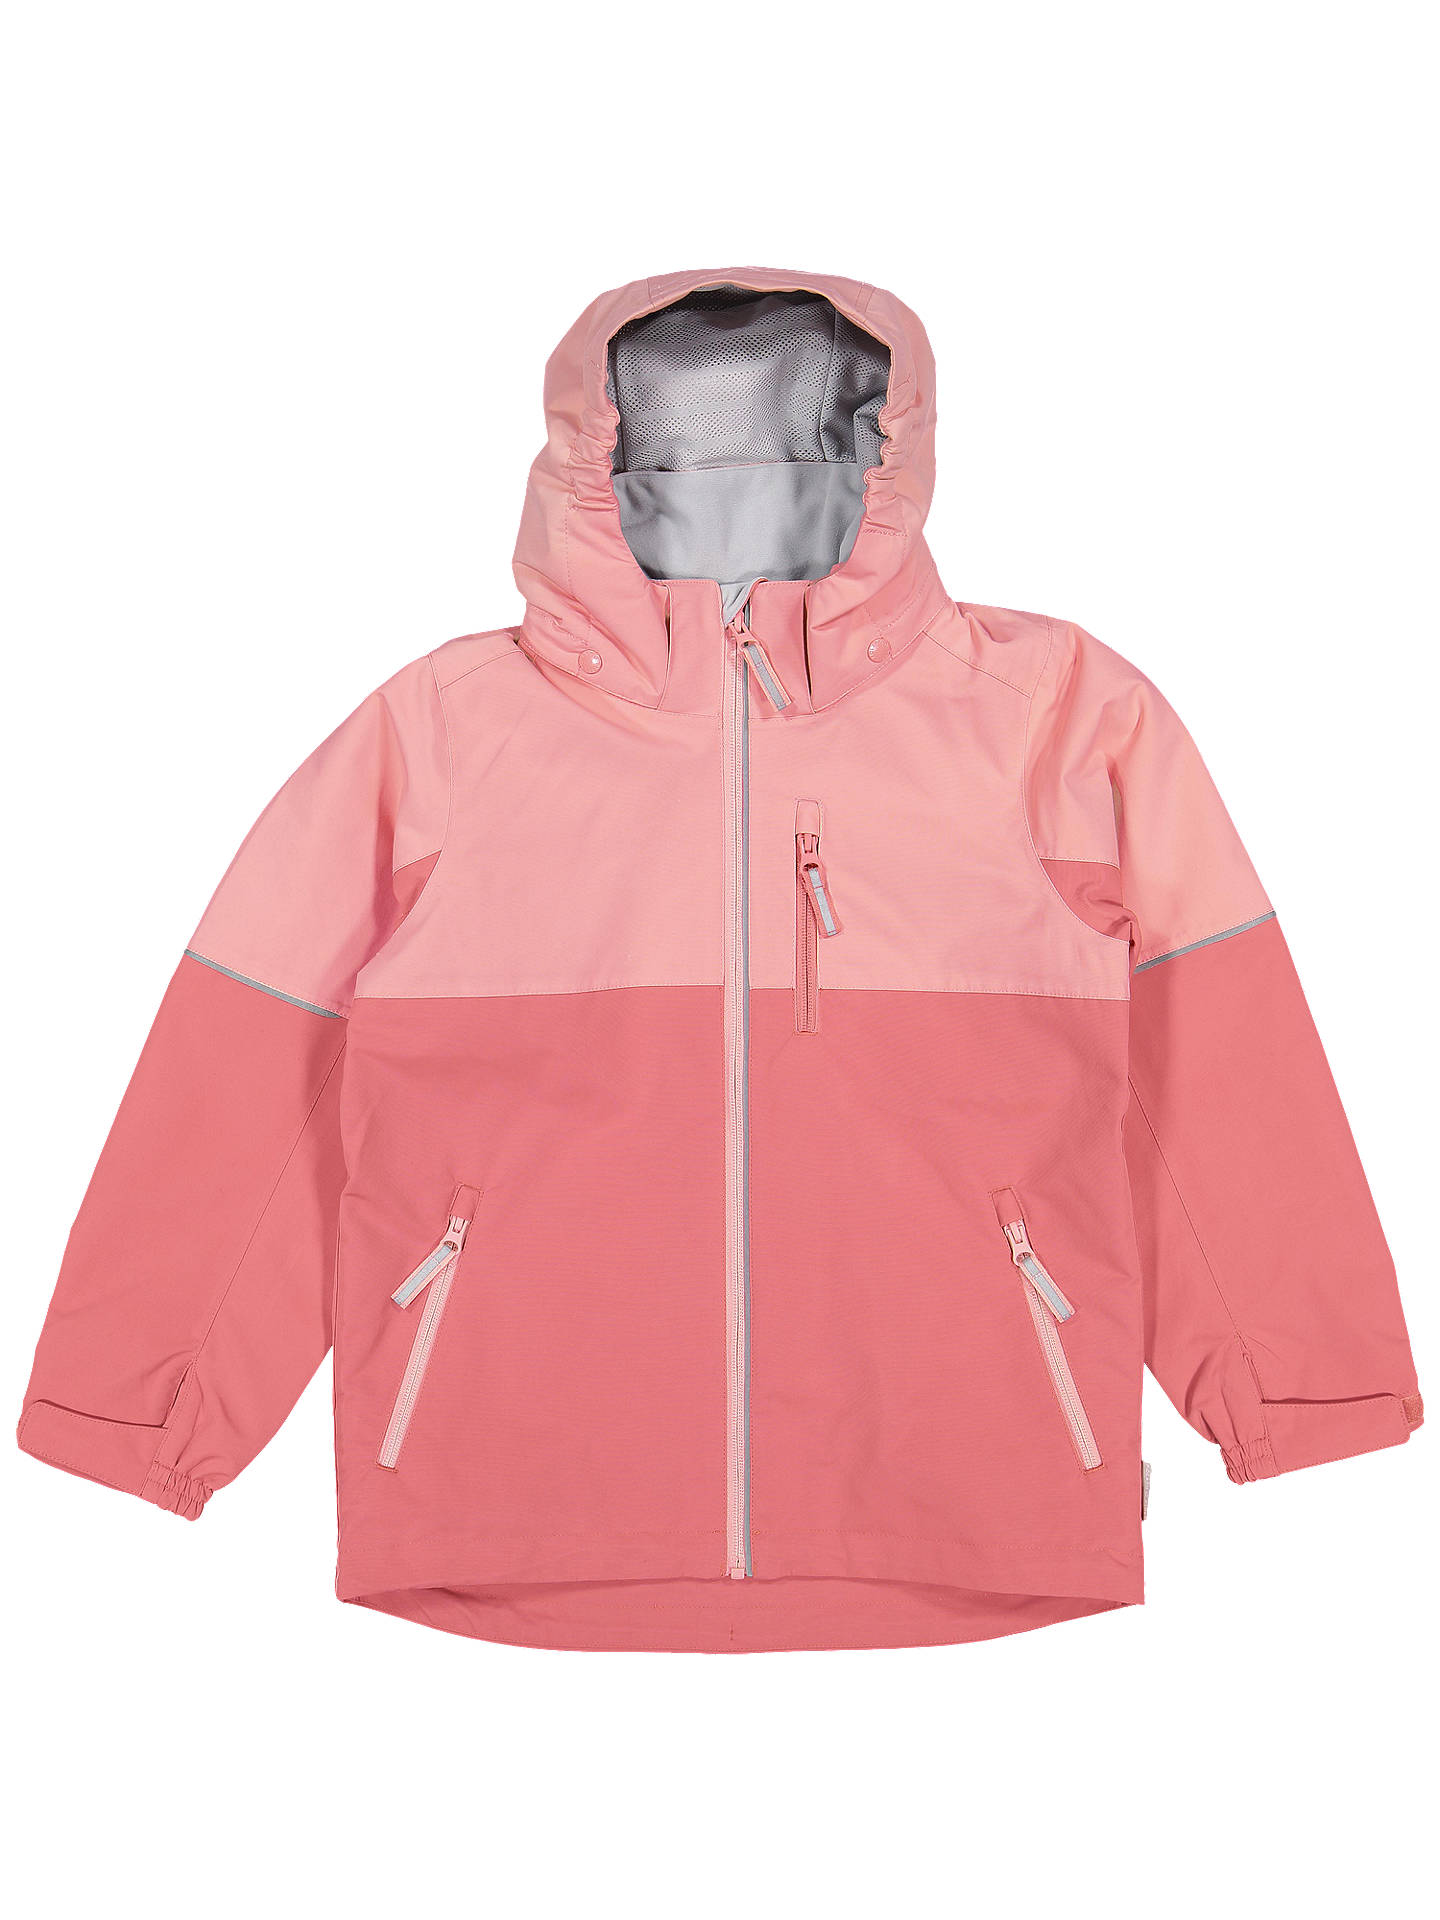 BuyPolarn O. Pyret Children's Waterproof Shell Coat, Pink, 2-3 years Online at johnlewis.com